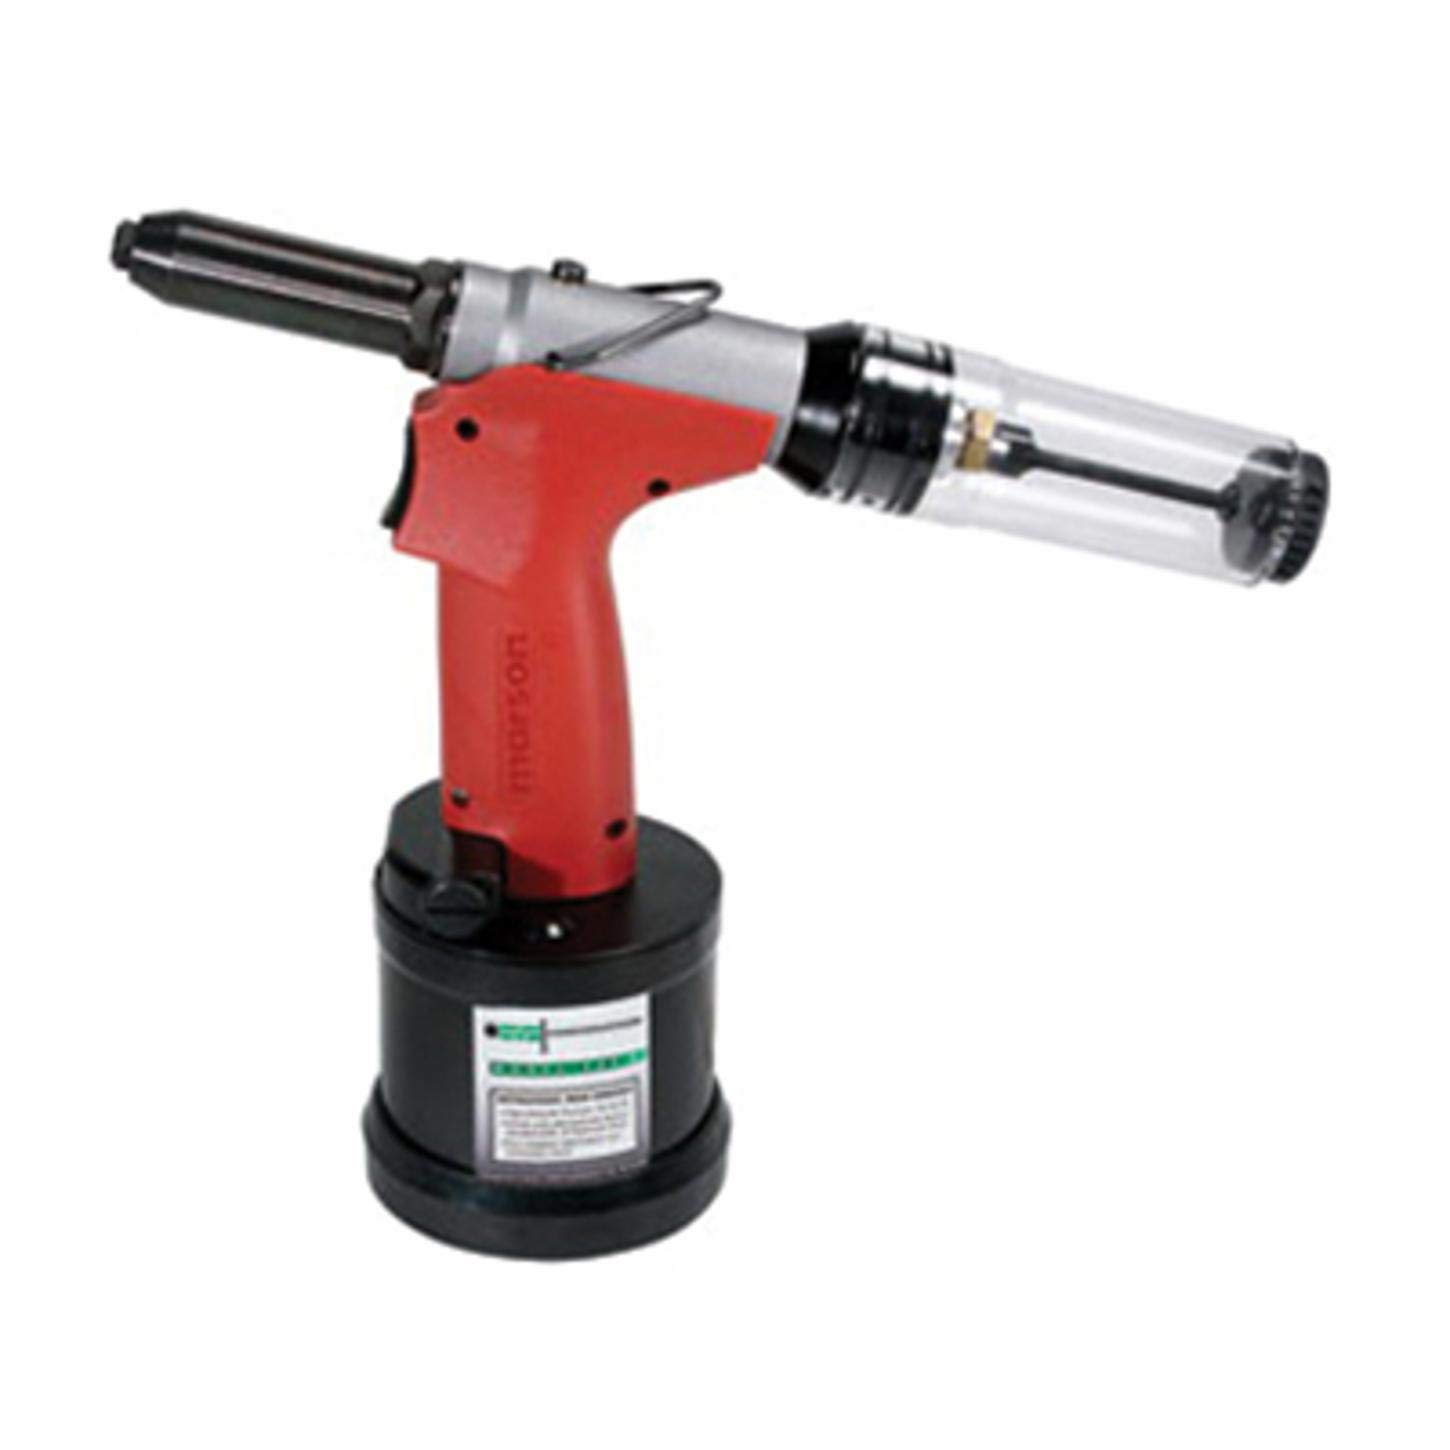 MARSON Air/Hydraulic Rivet Installation Tool - Model: 39045 Diameter Range: 1/8'' to 3/16'' Recommended Airline Pressure: 85-95 PSI